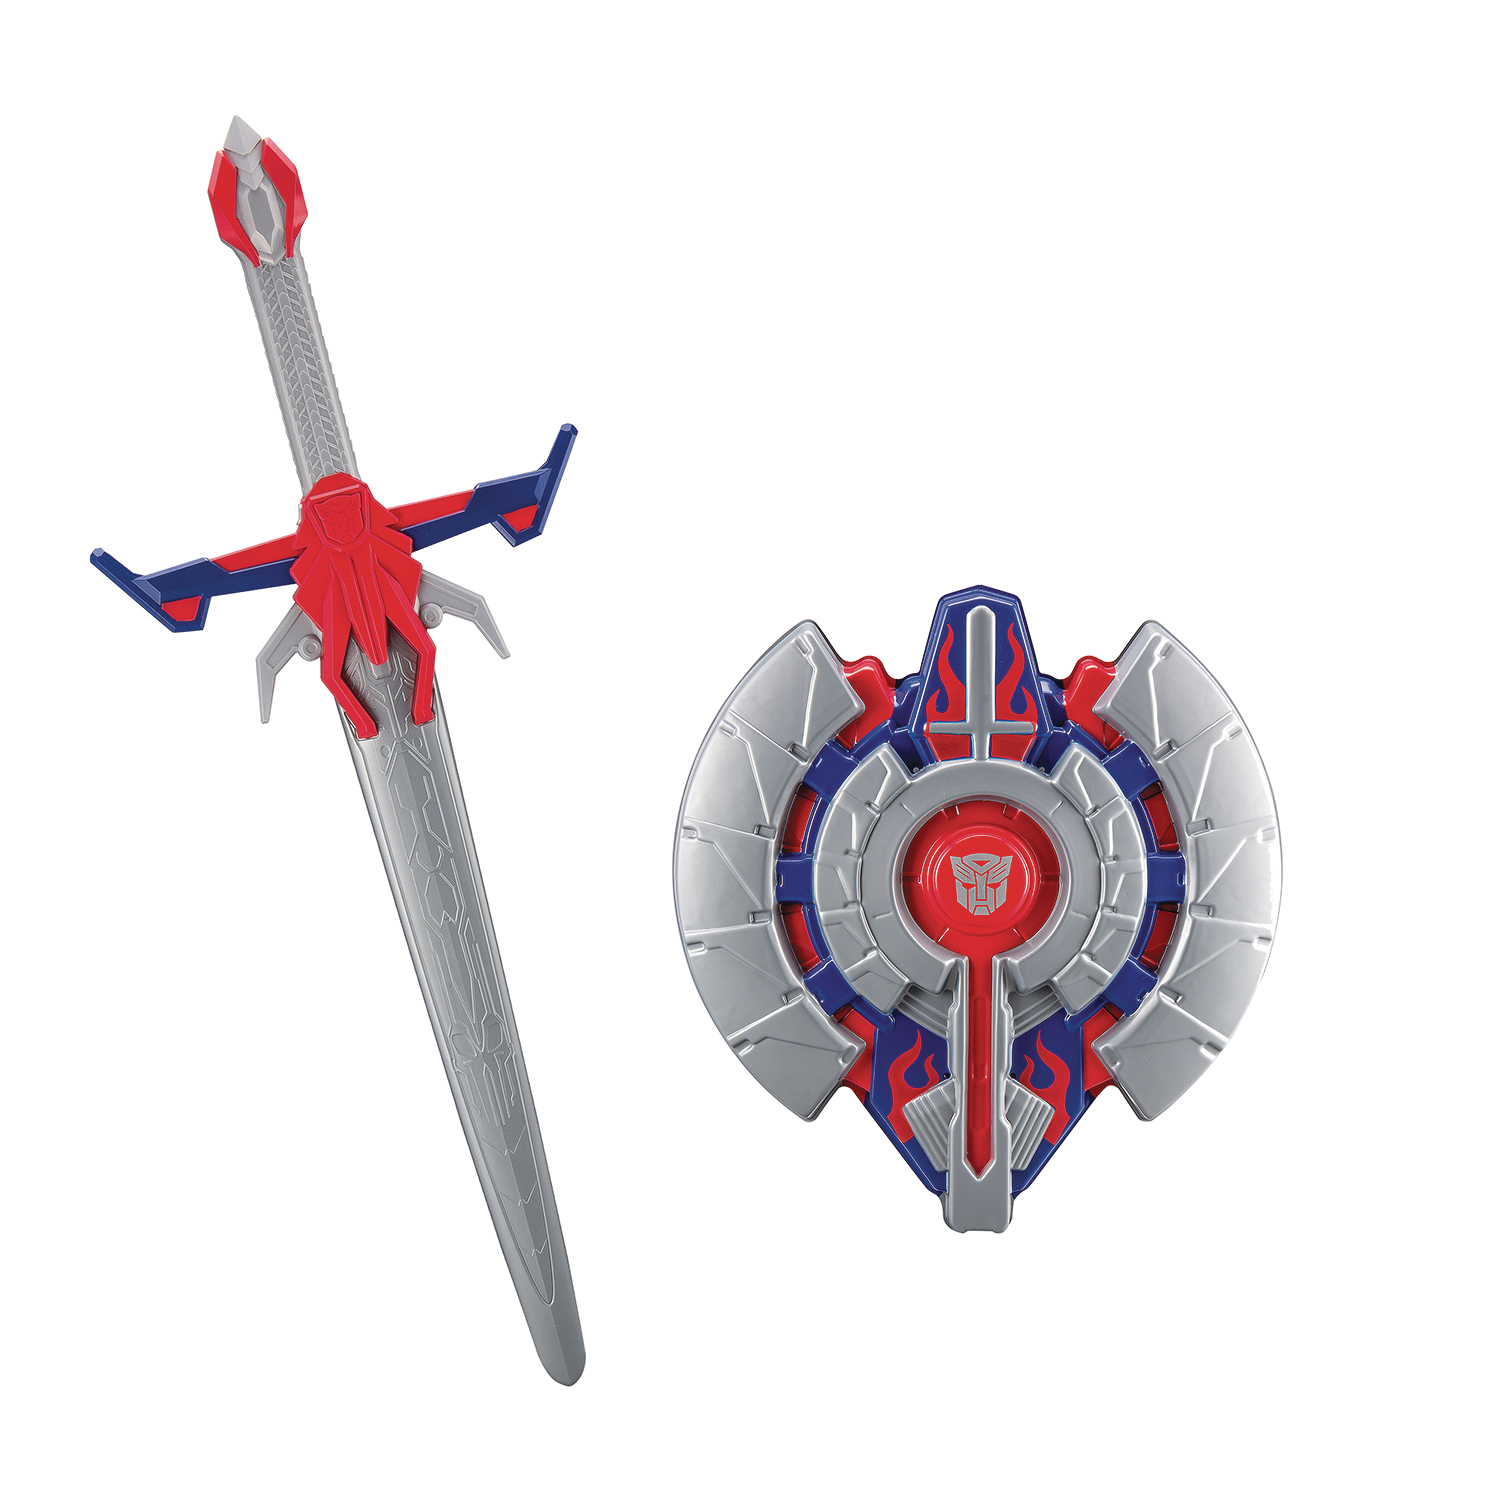 TRANSFORMERS OPTIMUS PRIME SWORD & SHIELD